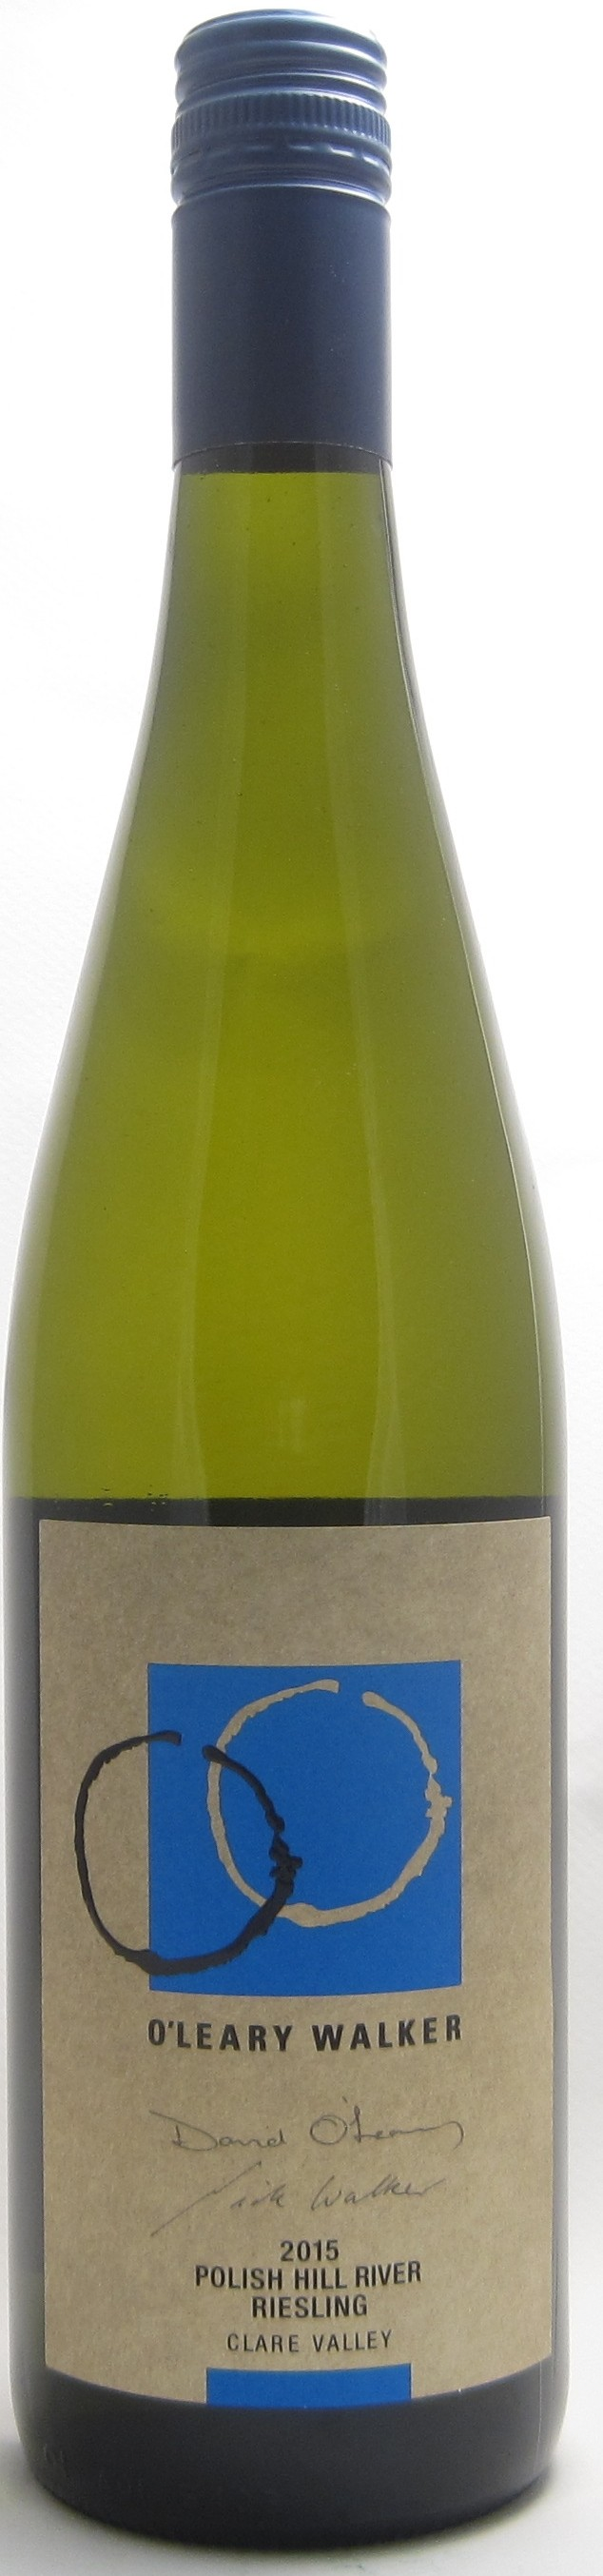 O'Leary Walker Polish Hill Riesling